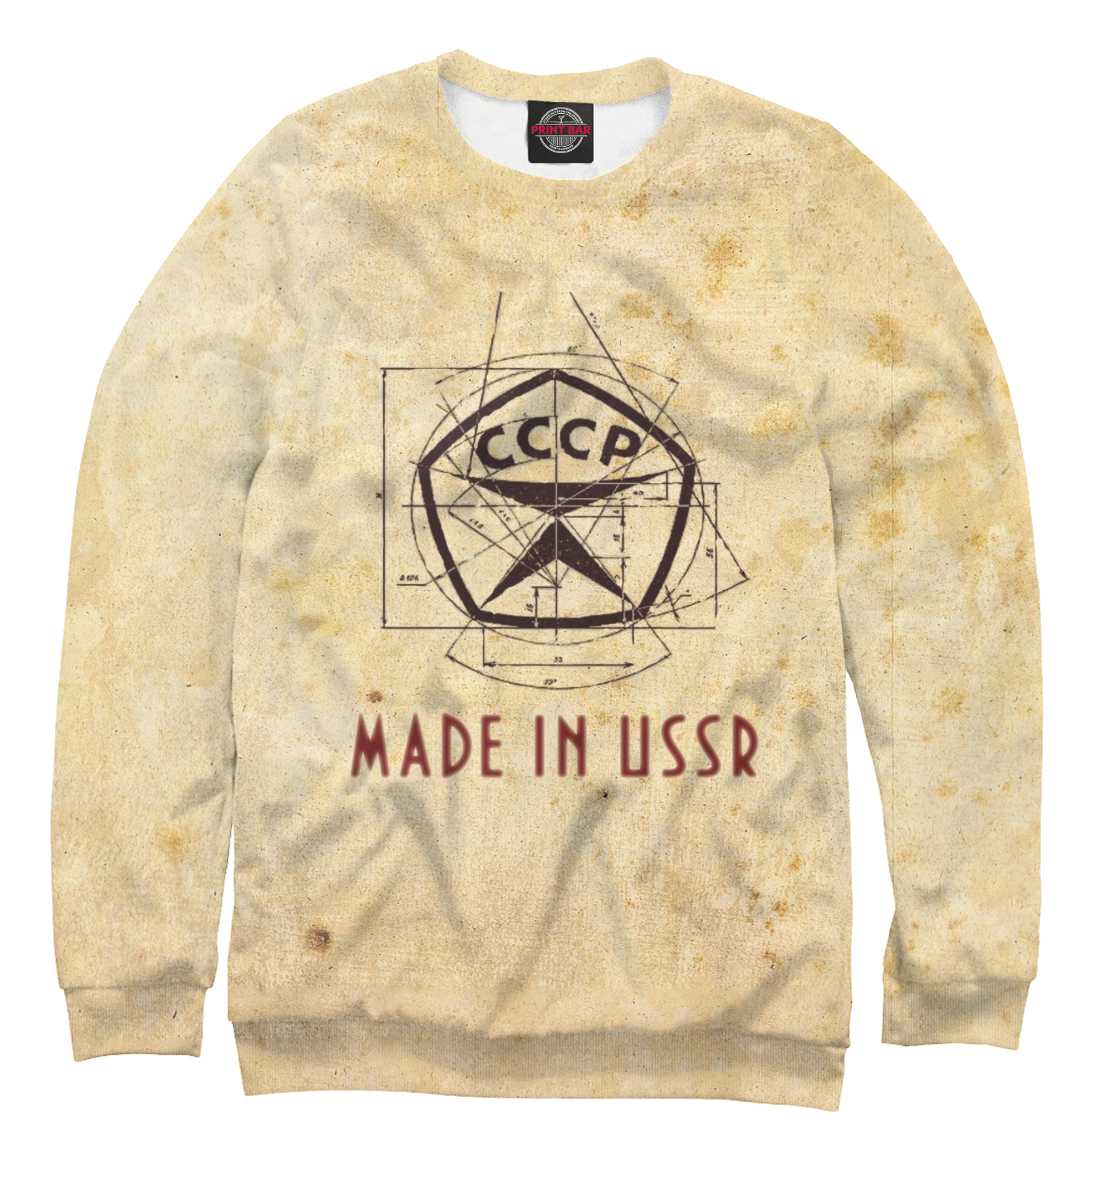 Фото - Made in USSR made in ussr